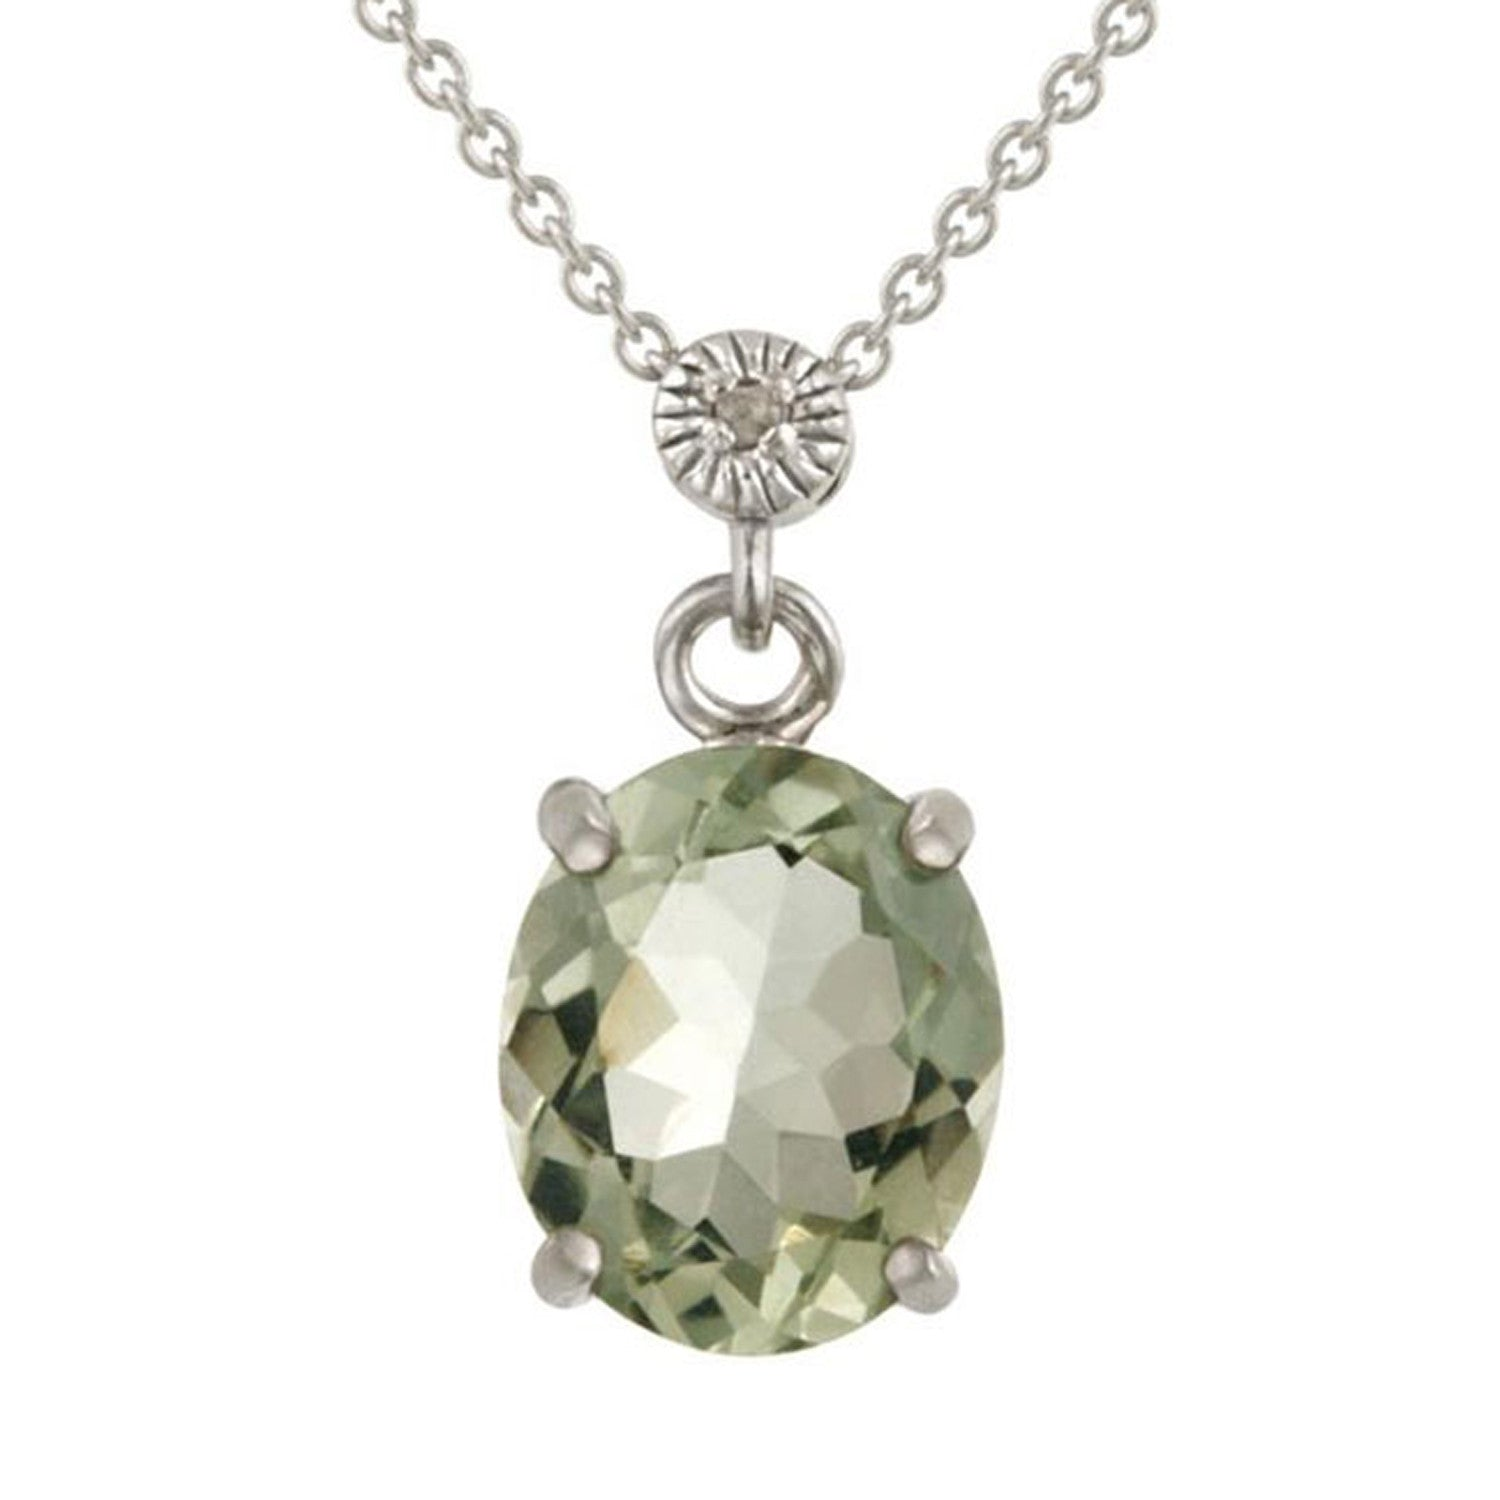 Gemstone & Diamond Accent Necklace in Sterling Silver - Green Amethyst